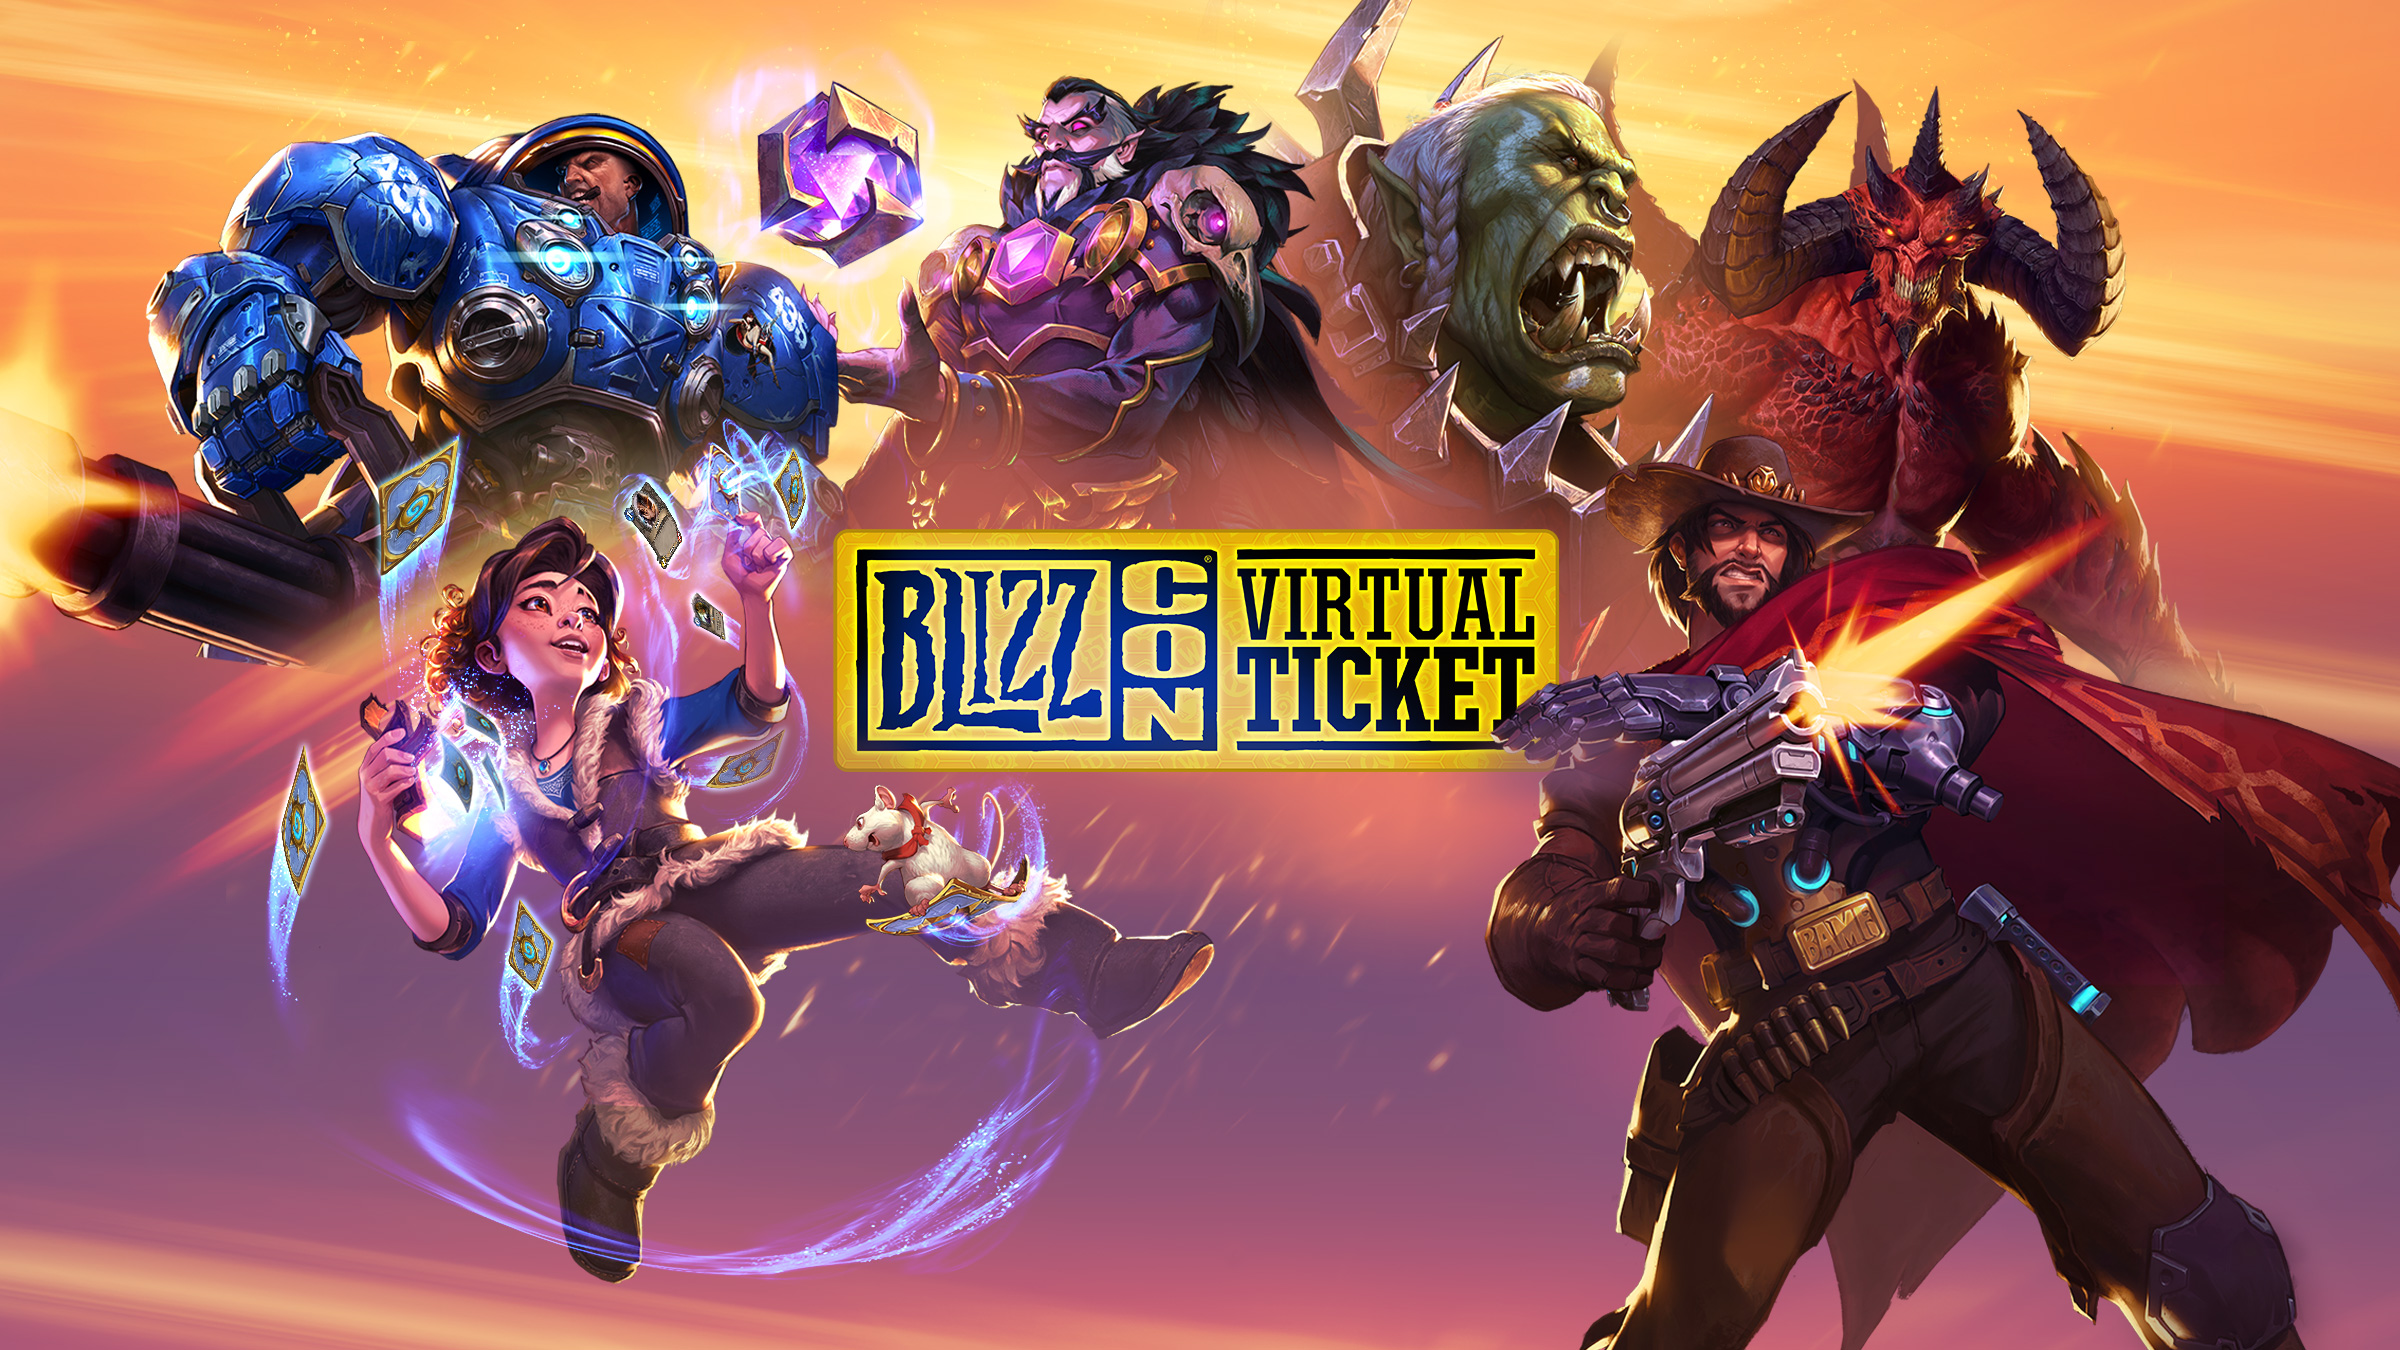 Jogue a demo do WoW® Classic da BlizzCon® com o Ingresso Virtual